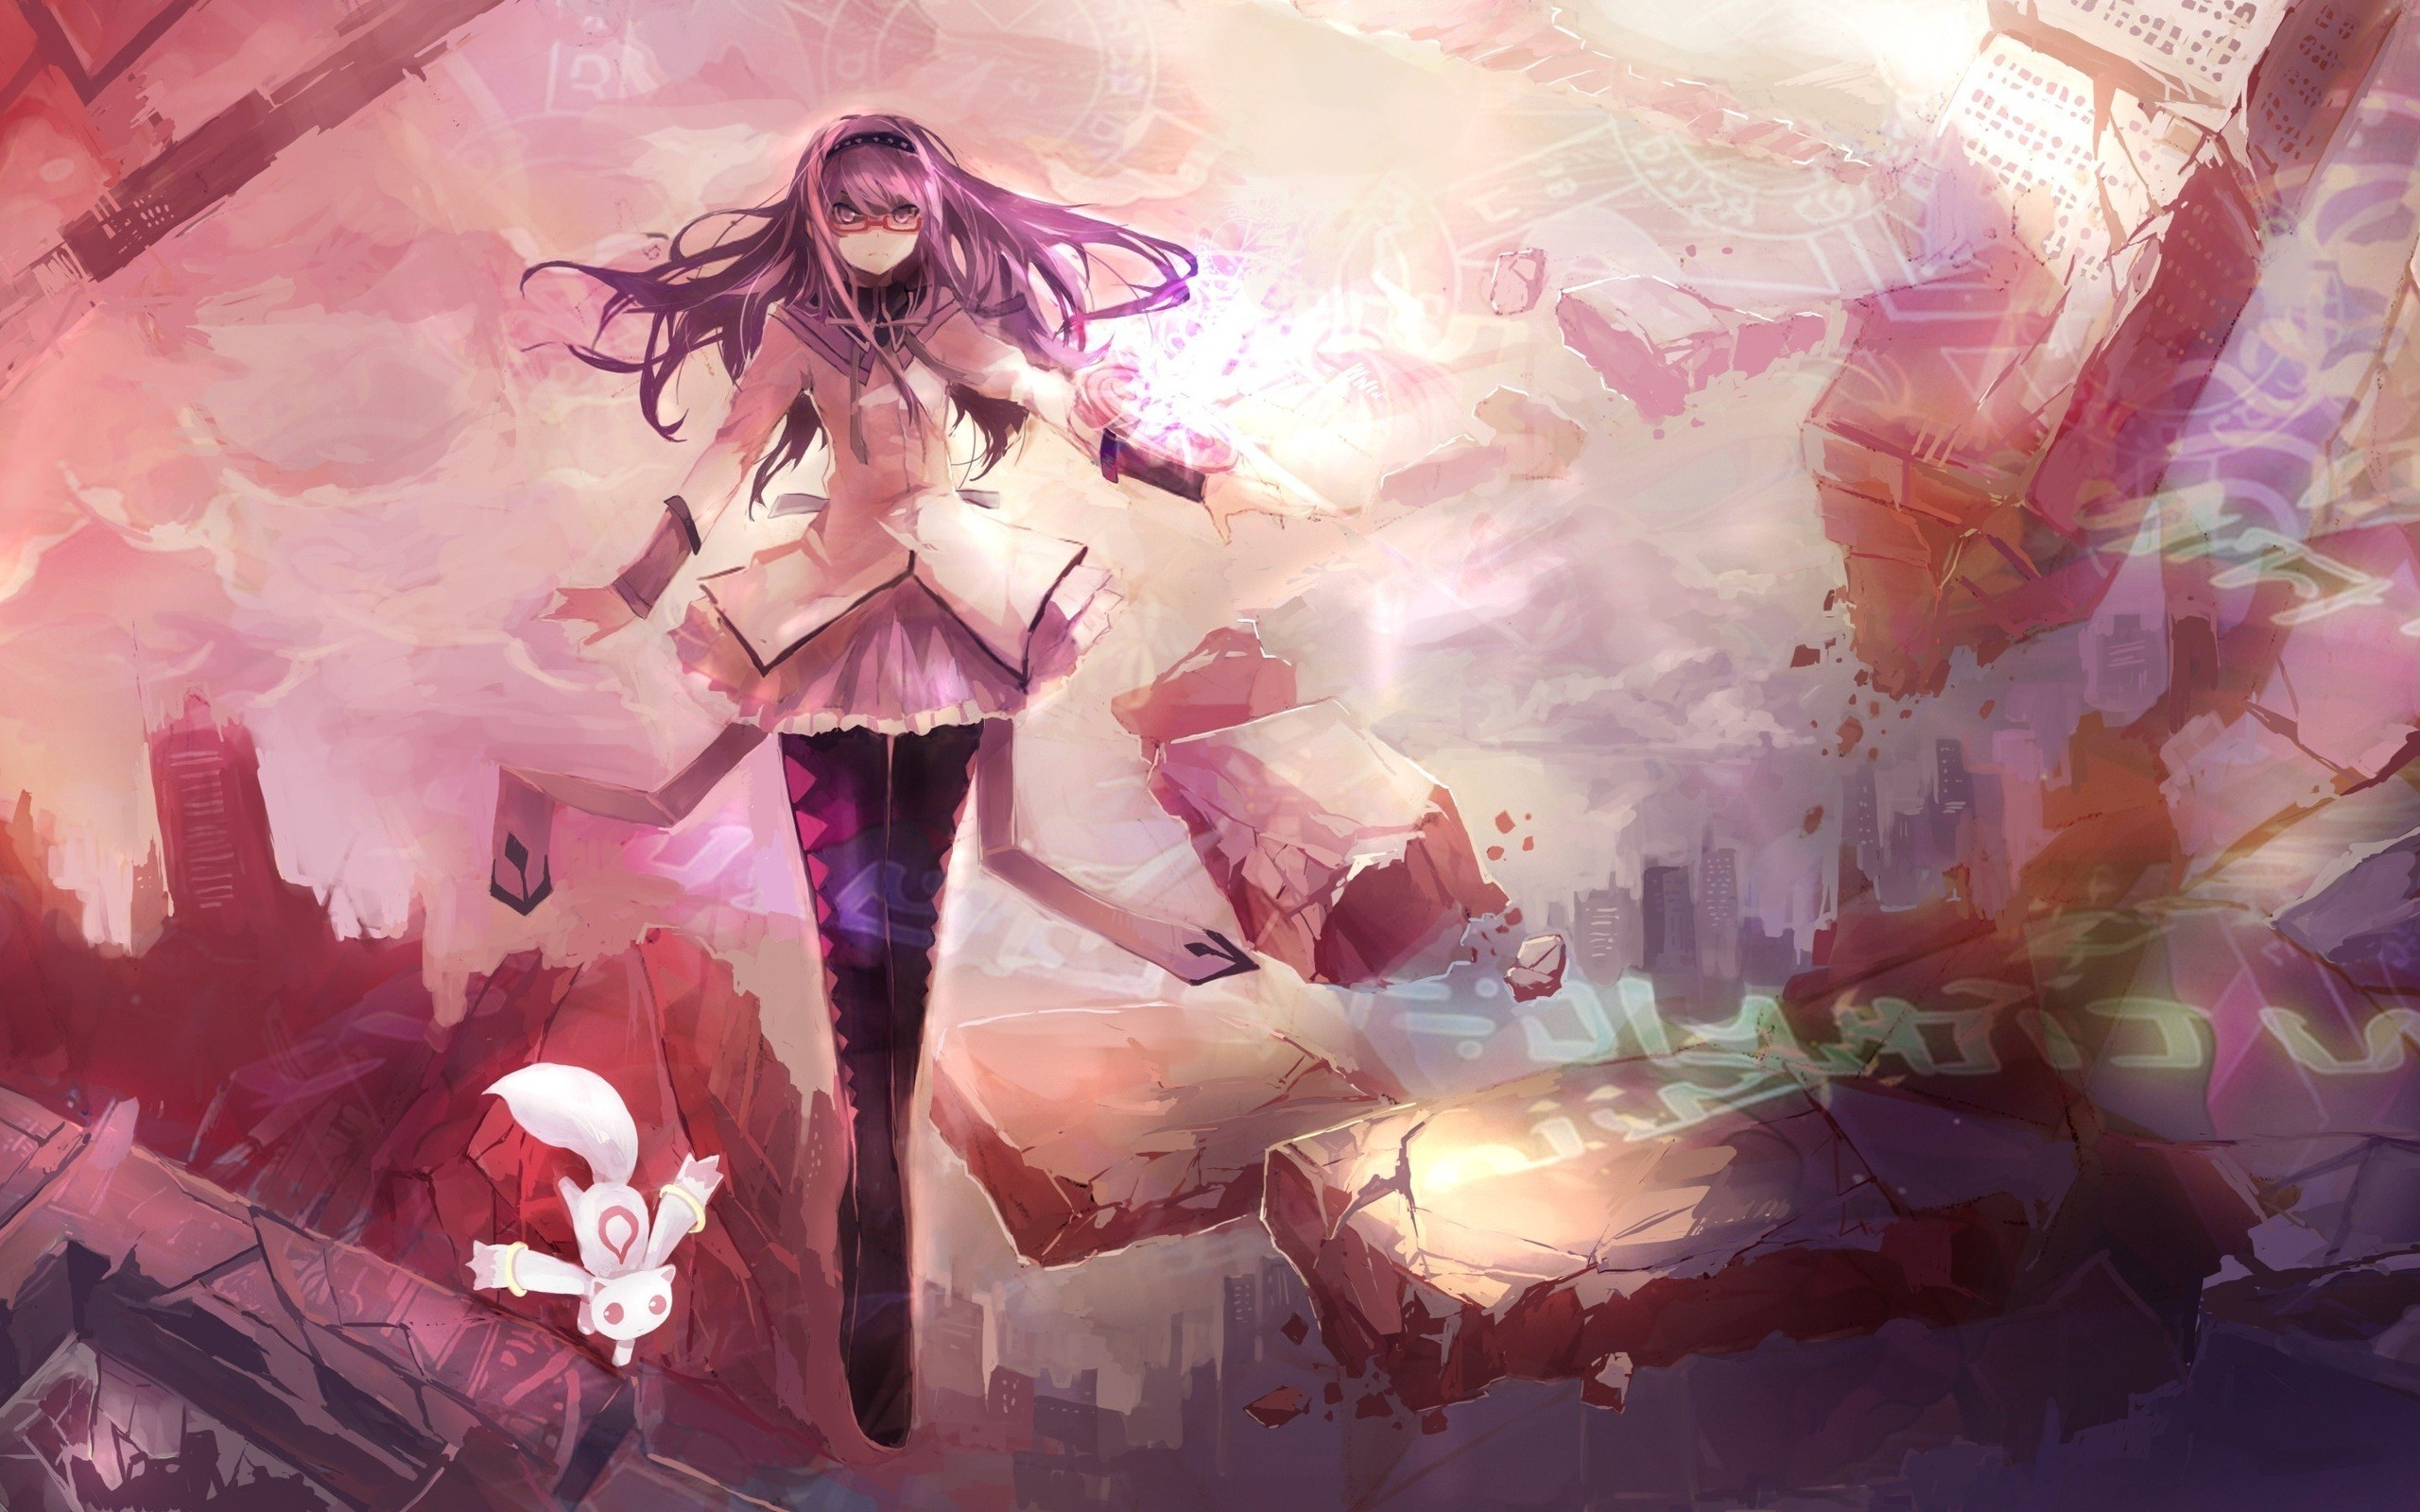 Free Download Anime Love Art Fight Picture Abstraction Beauty Girl